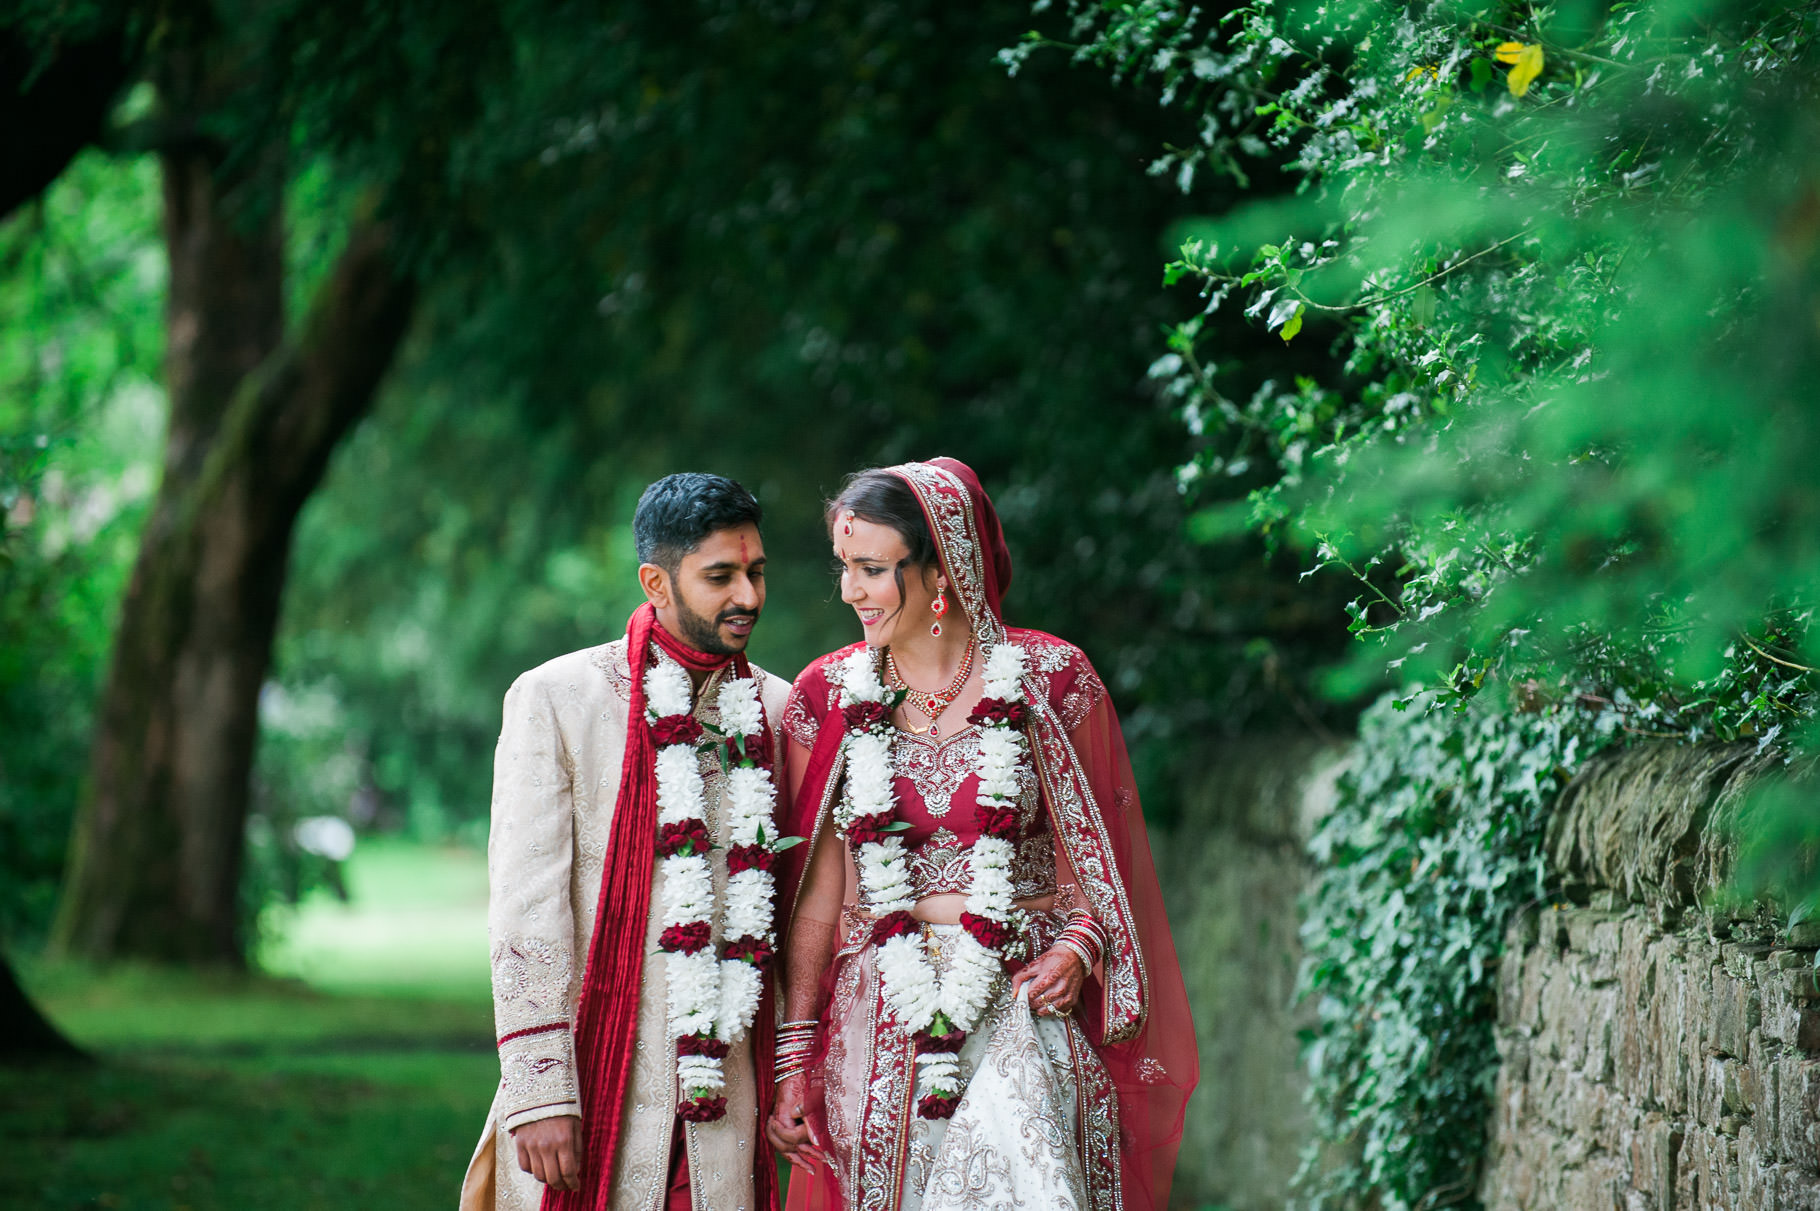 Indian Scottish bride and groom walking wearing traditional Indian wedding outfits